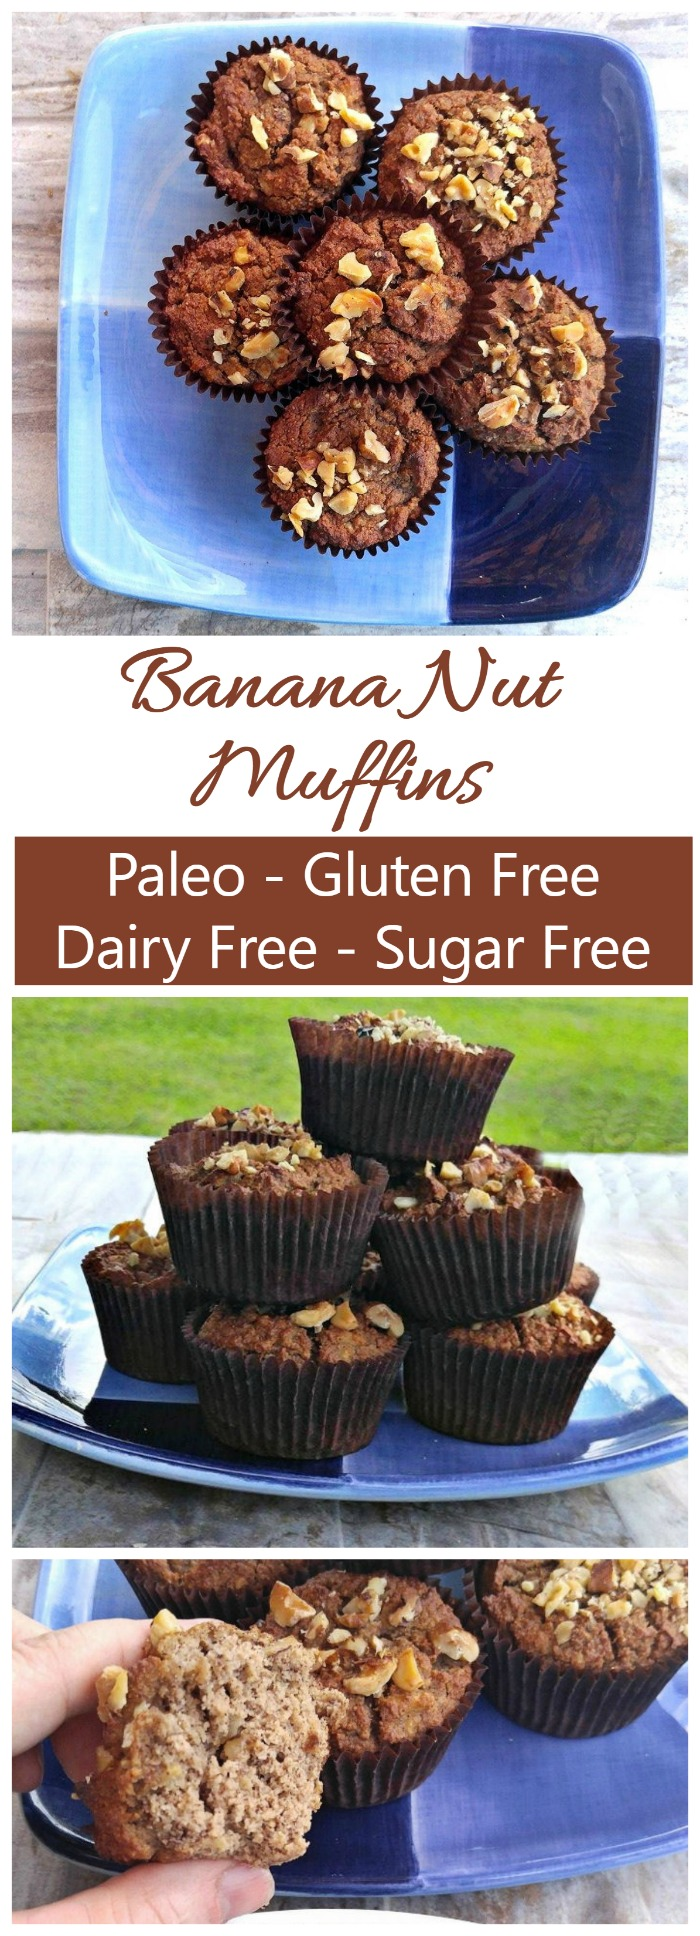 These Paleo banana nut muffins are perfect for a breakfast on the go. They are dairy free, sugar free and gluten free and super easy to make. Ripe bananas add the needed sweetness.